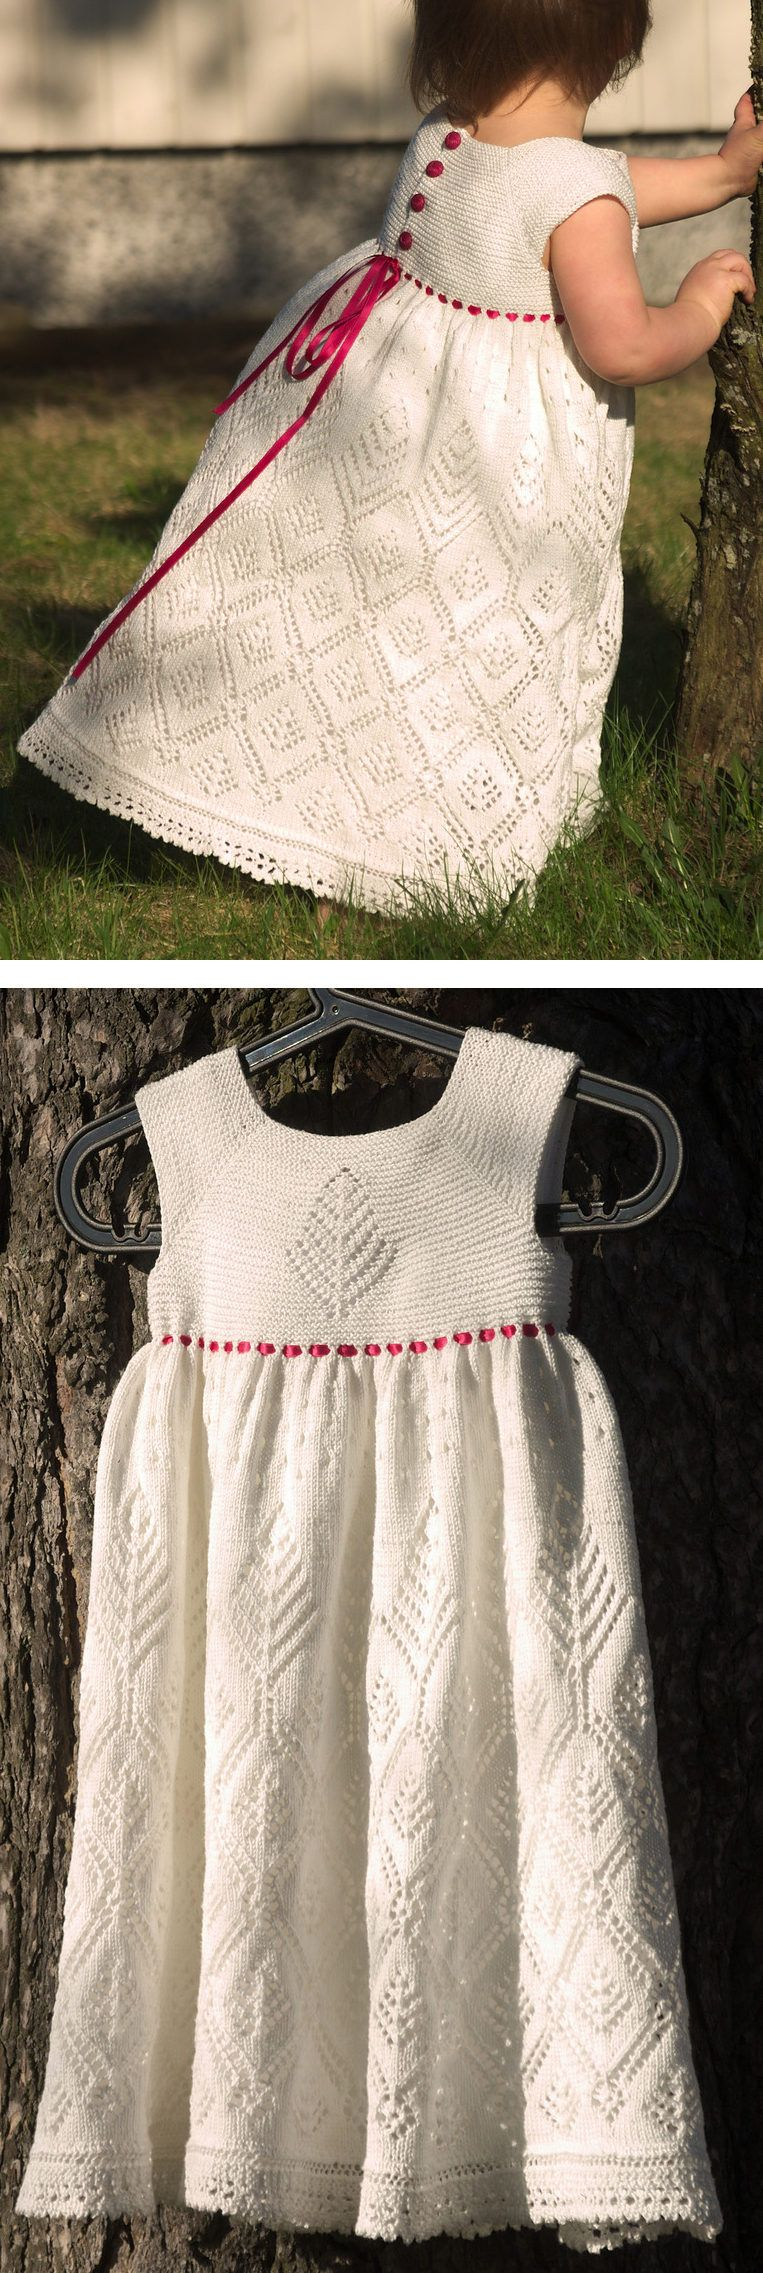 Dresses and Skirts for Children Knitting Patterns | Spruce tree ...